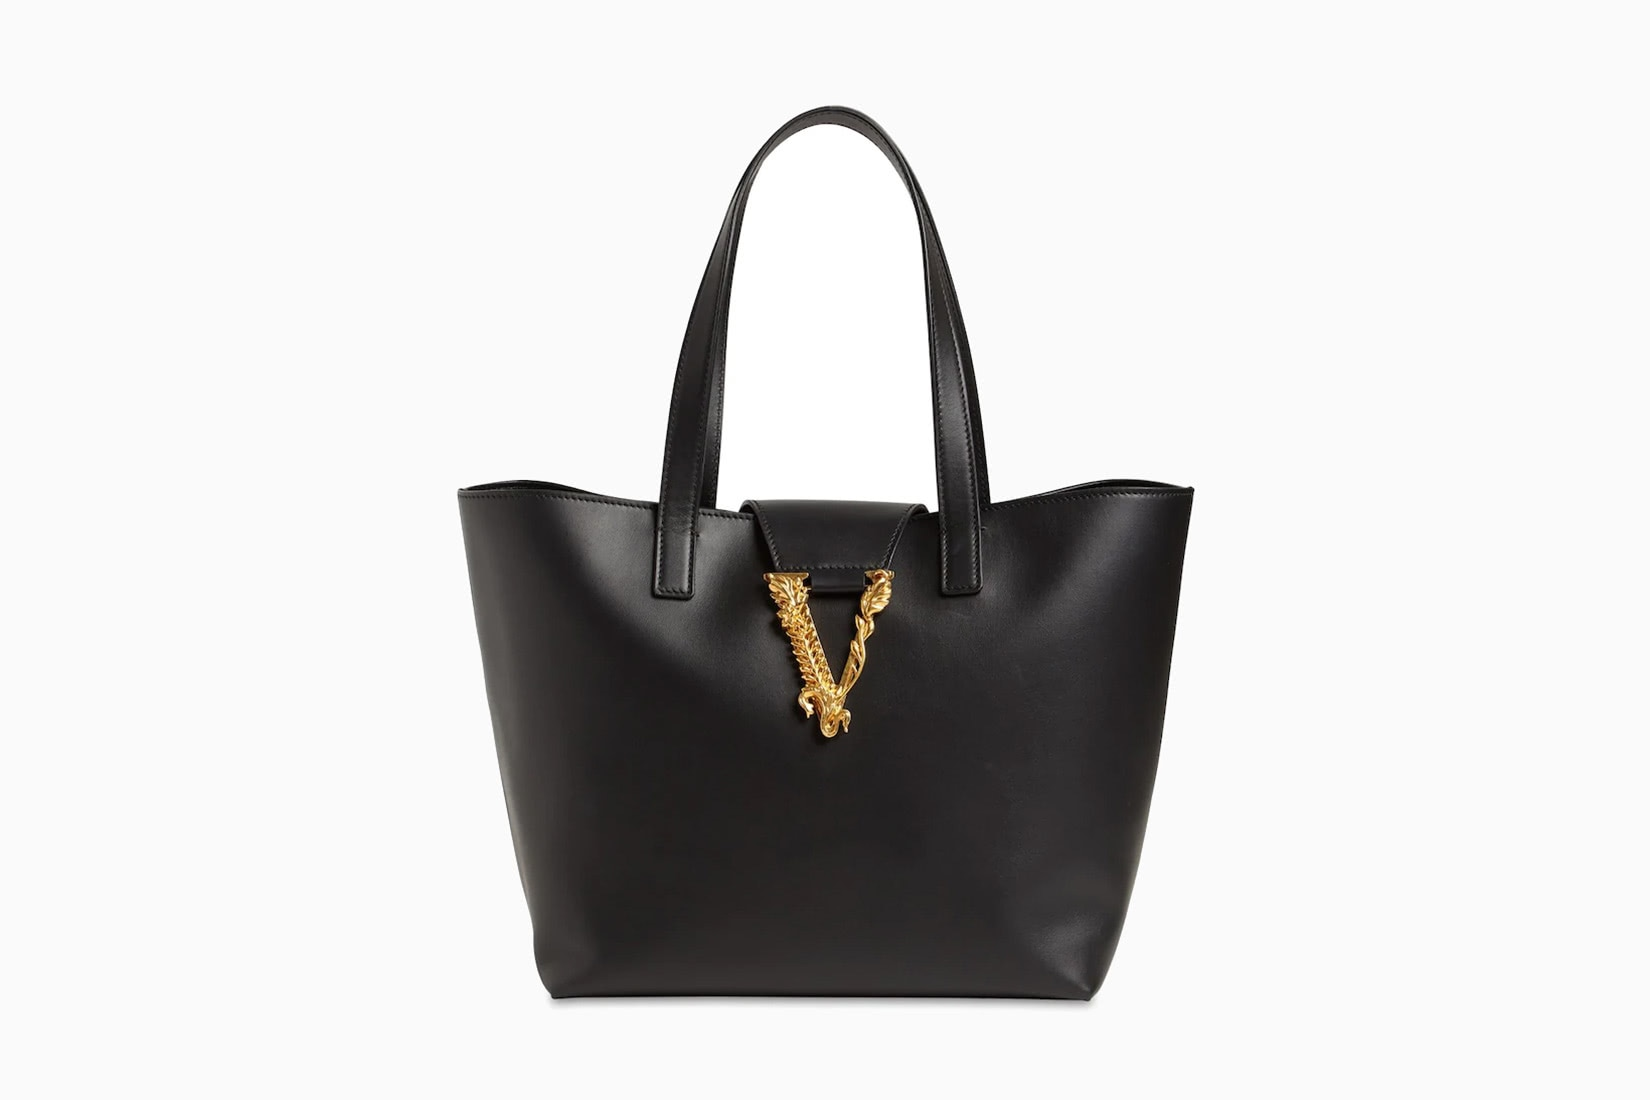 best travel tote bags women stylish versace review - Luxe Digital